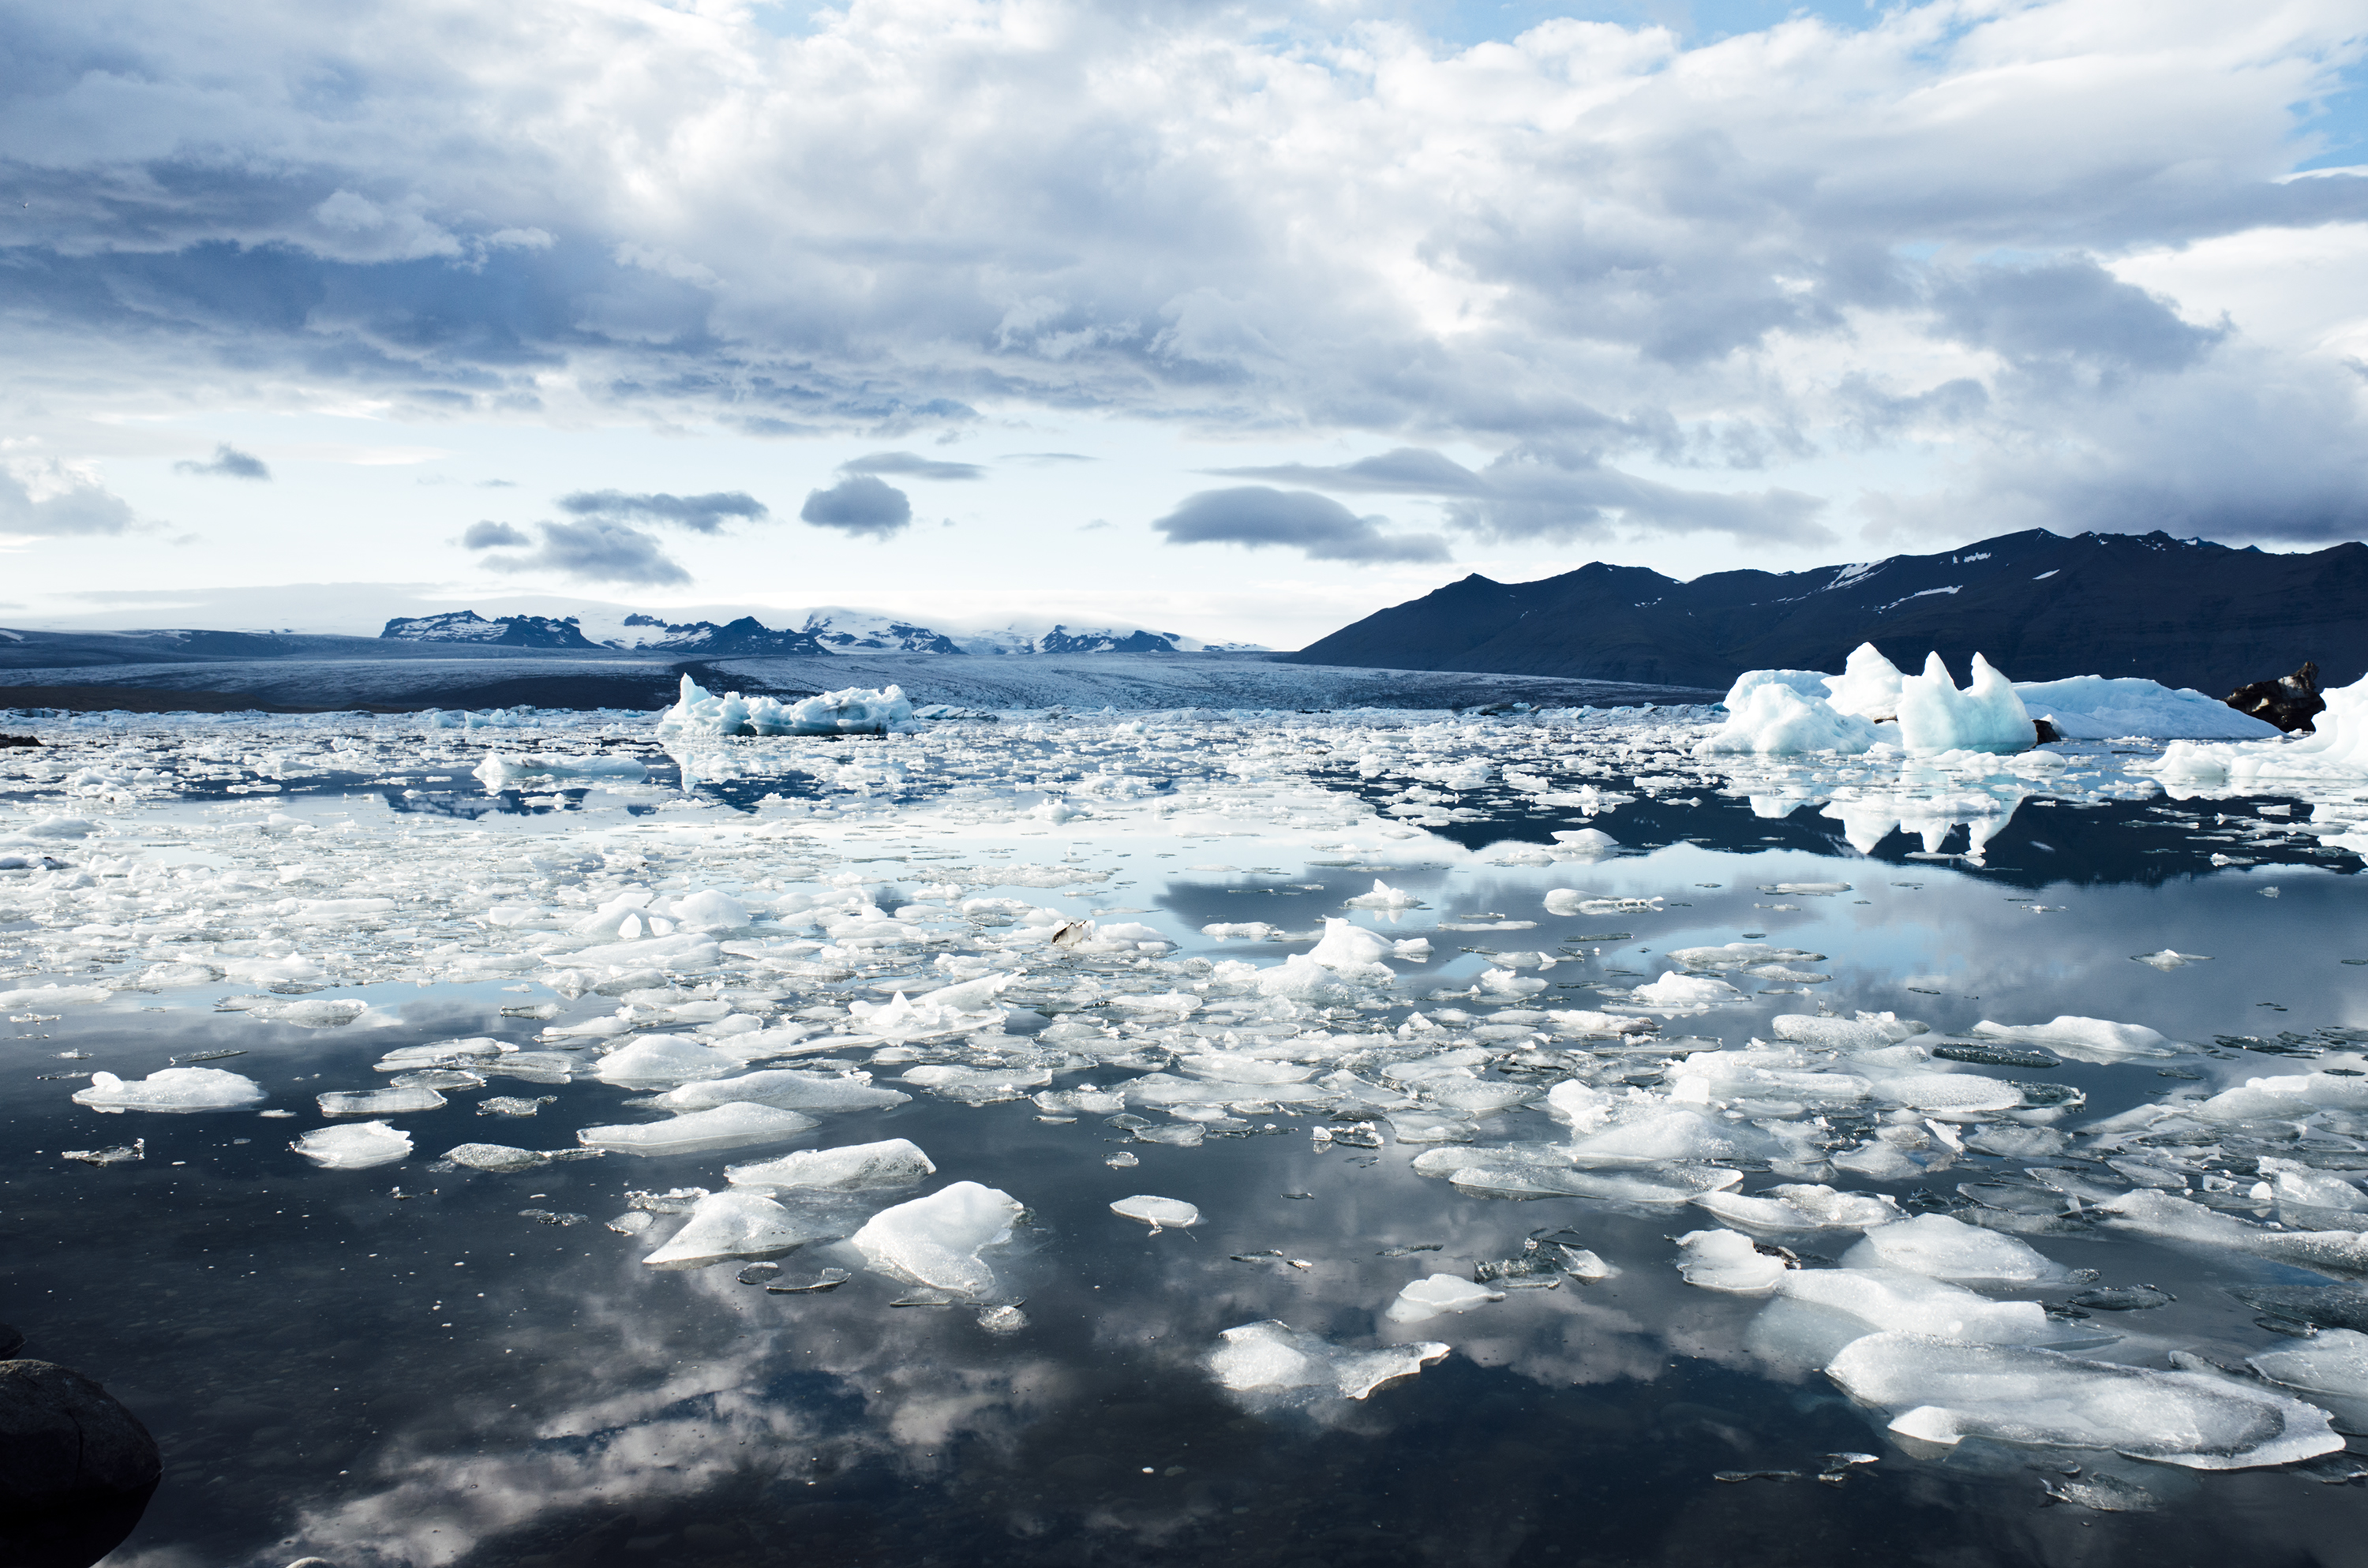 Ice Fields in Iceland image - Free stock photo - Public